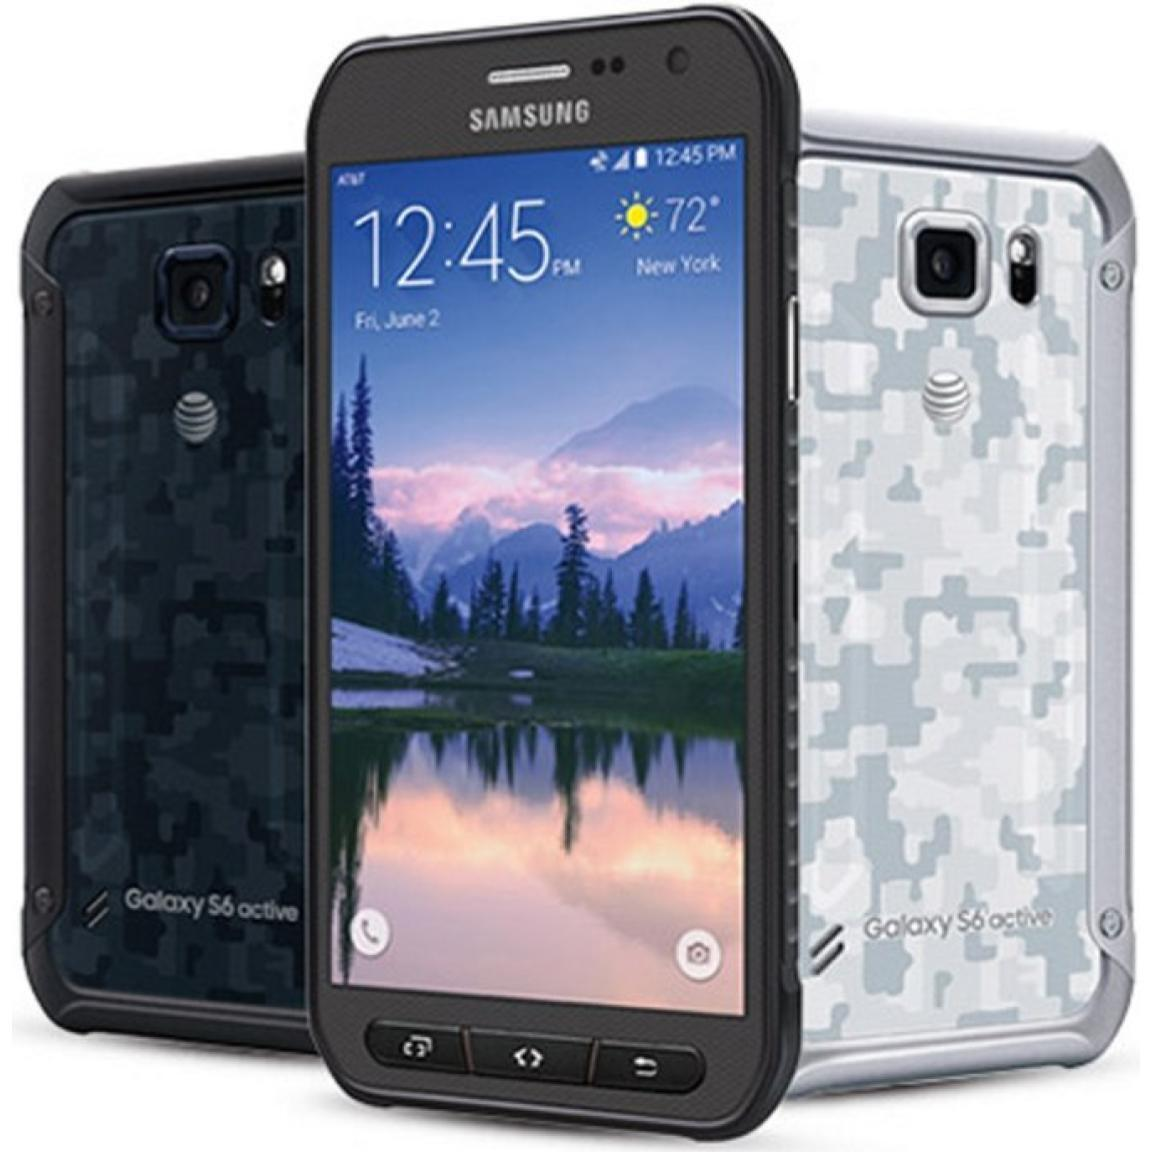 Android Phone - Samsung Galaxy S6 Active - G890A - 32GB - Factory Unlocked; AT&T / T-Mobile